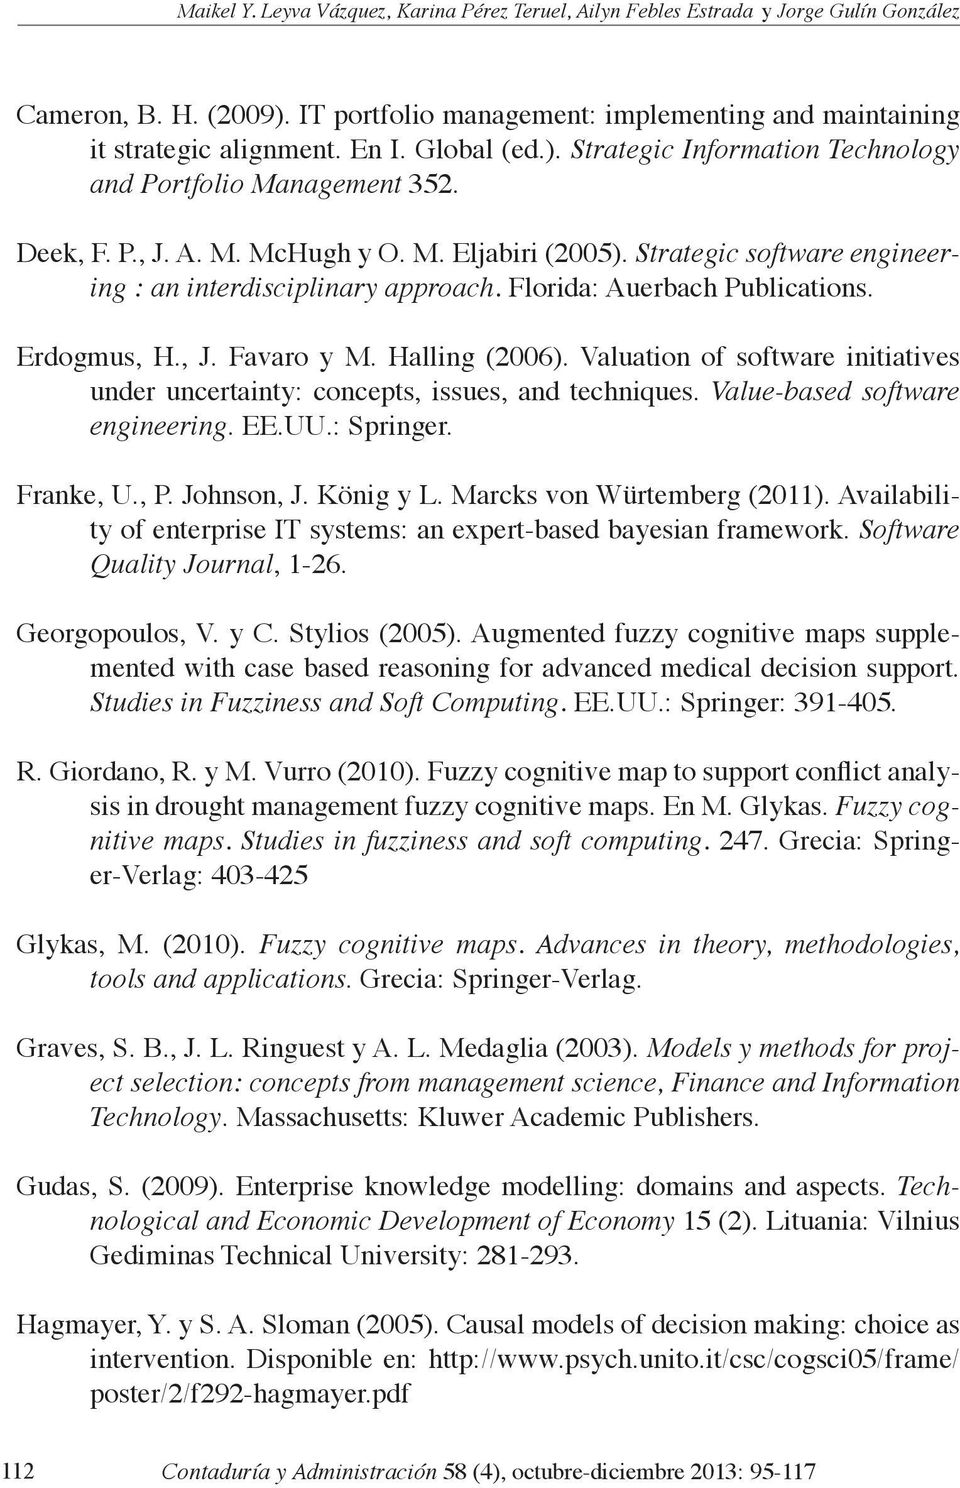 Florida: Auerbach Publications. Erdogmus, H., J. Favaro y M. Halling (2006). Valuation of software initiatives under uncertainty: concepts, issues, and techniques. Value-based software engineering.